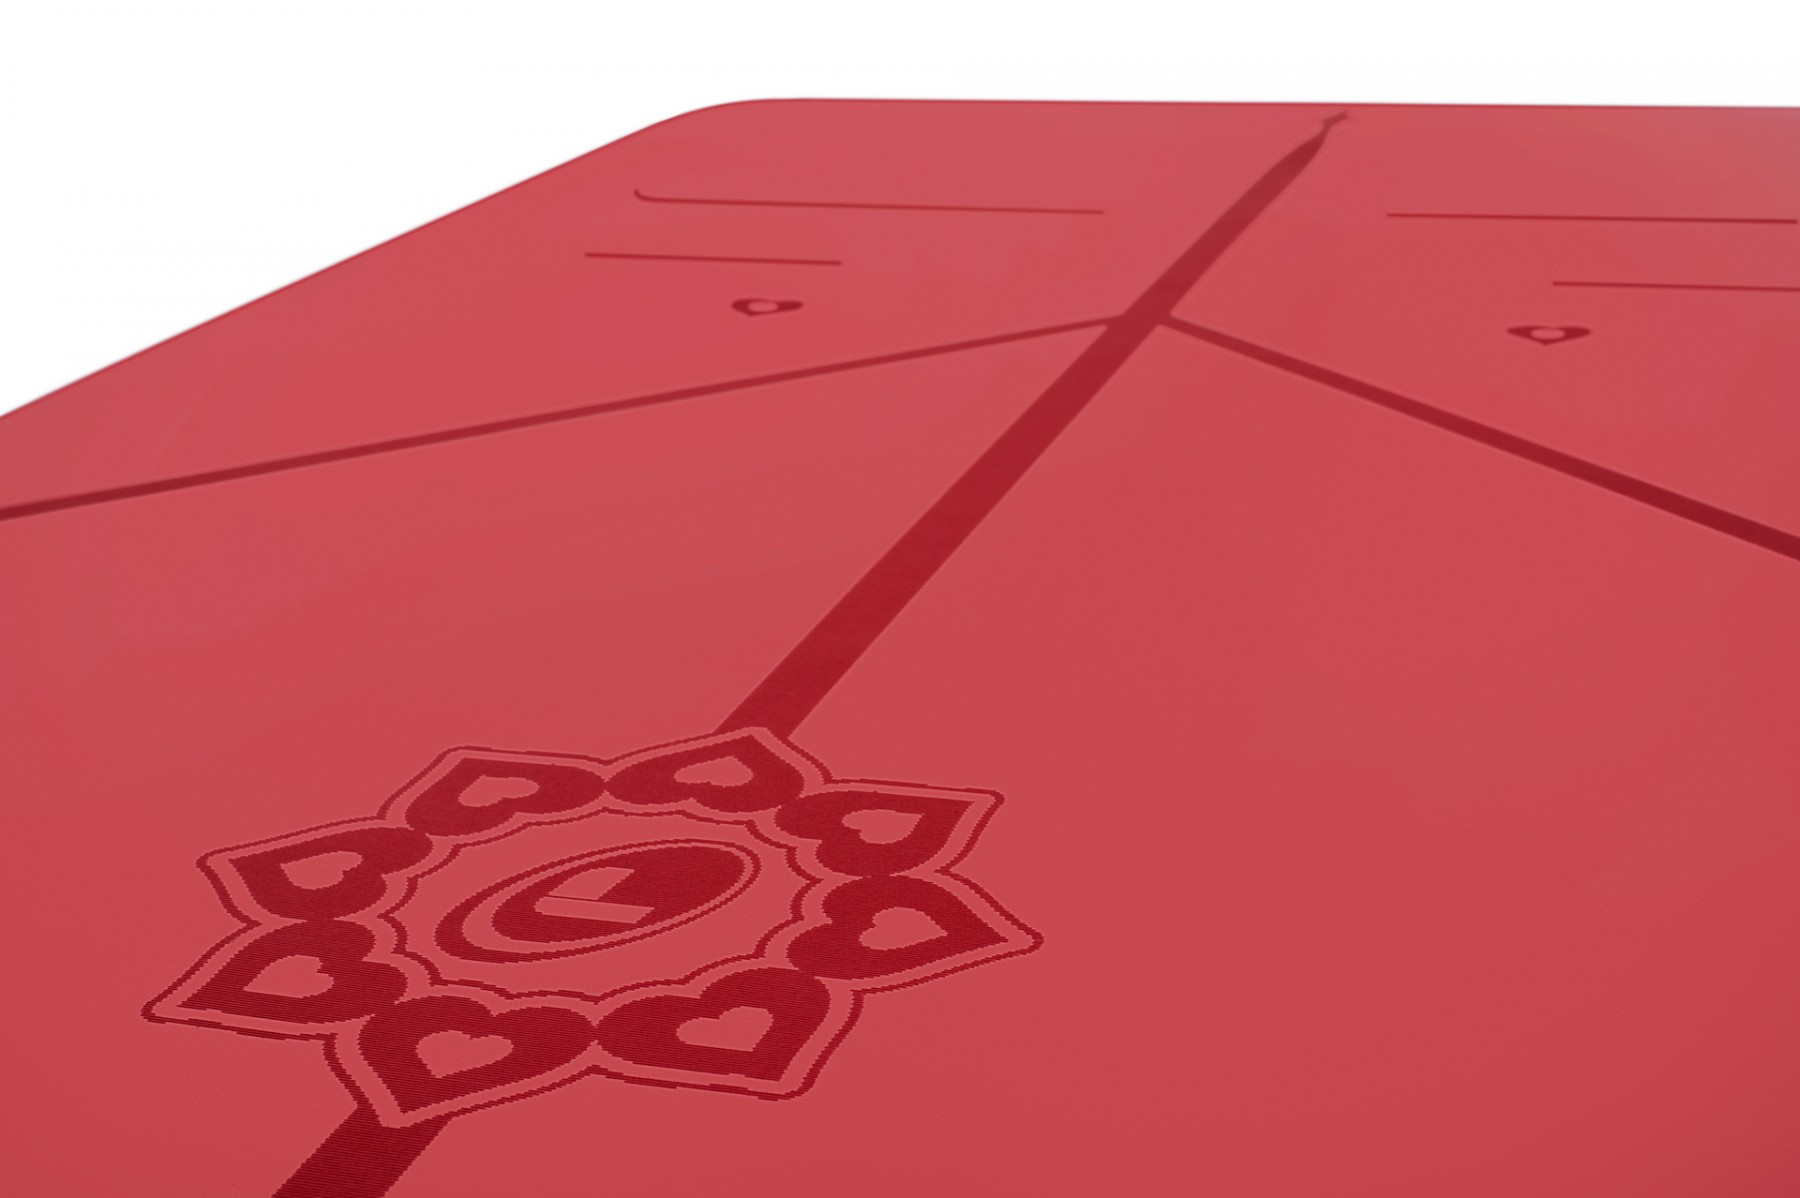 Liforme LOVE yoga mat - £115.00